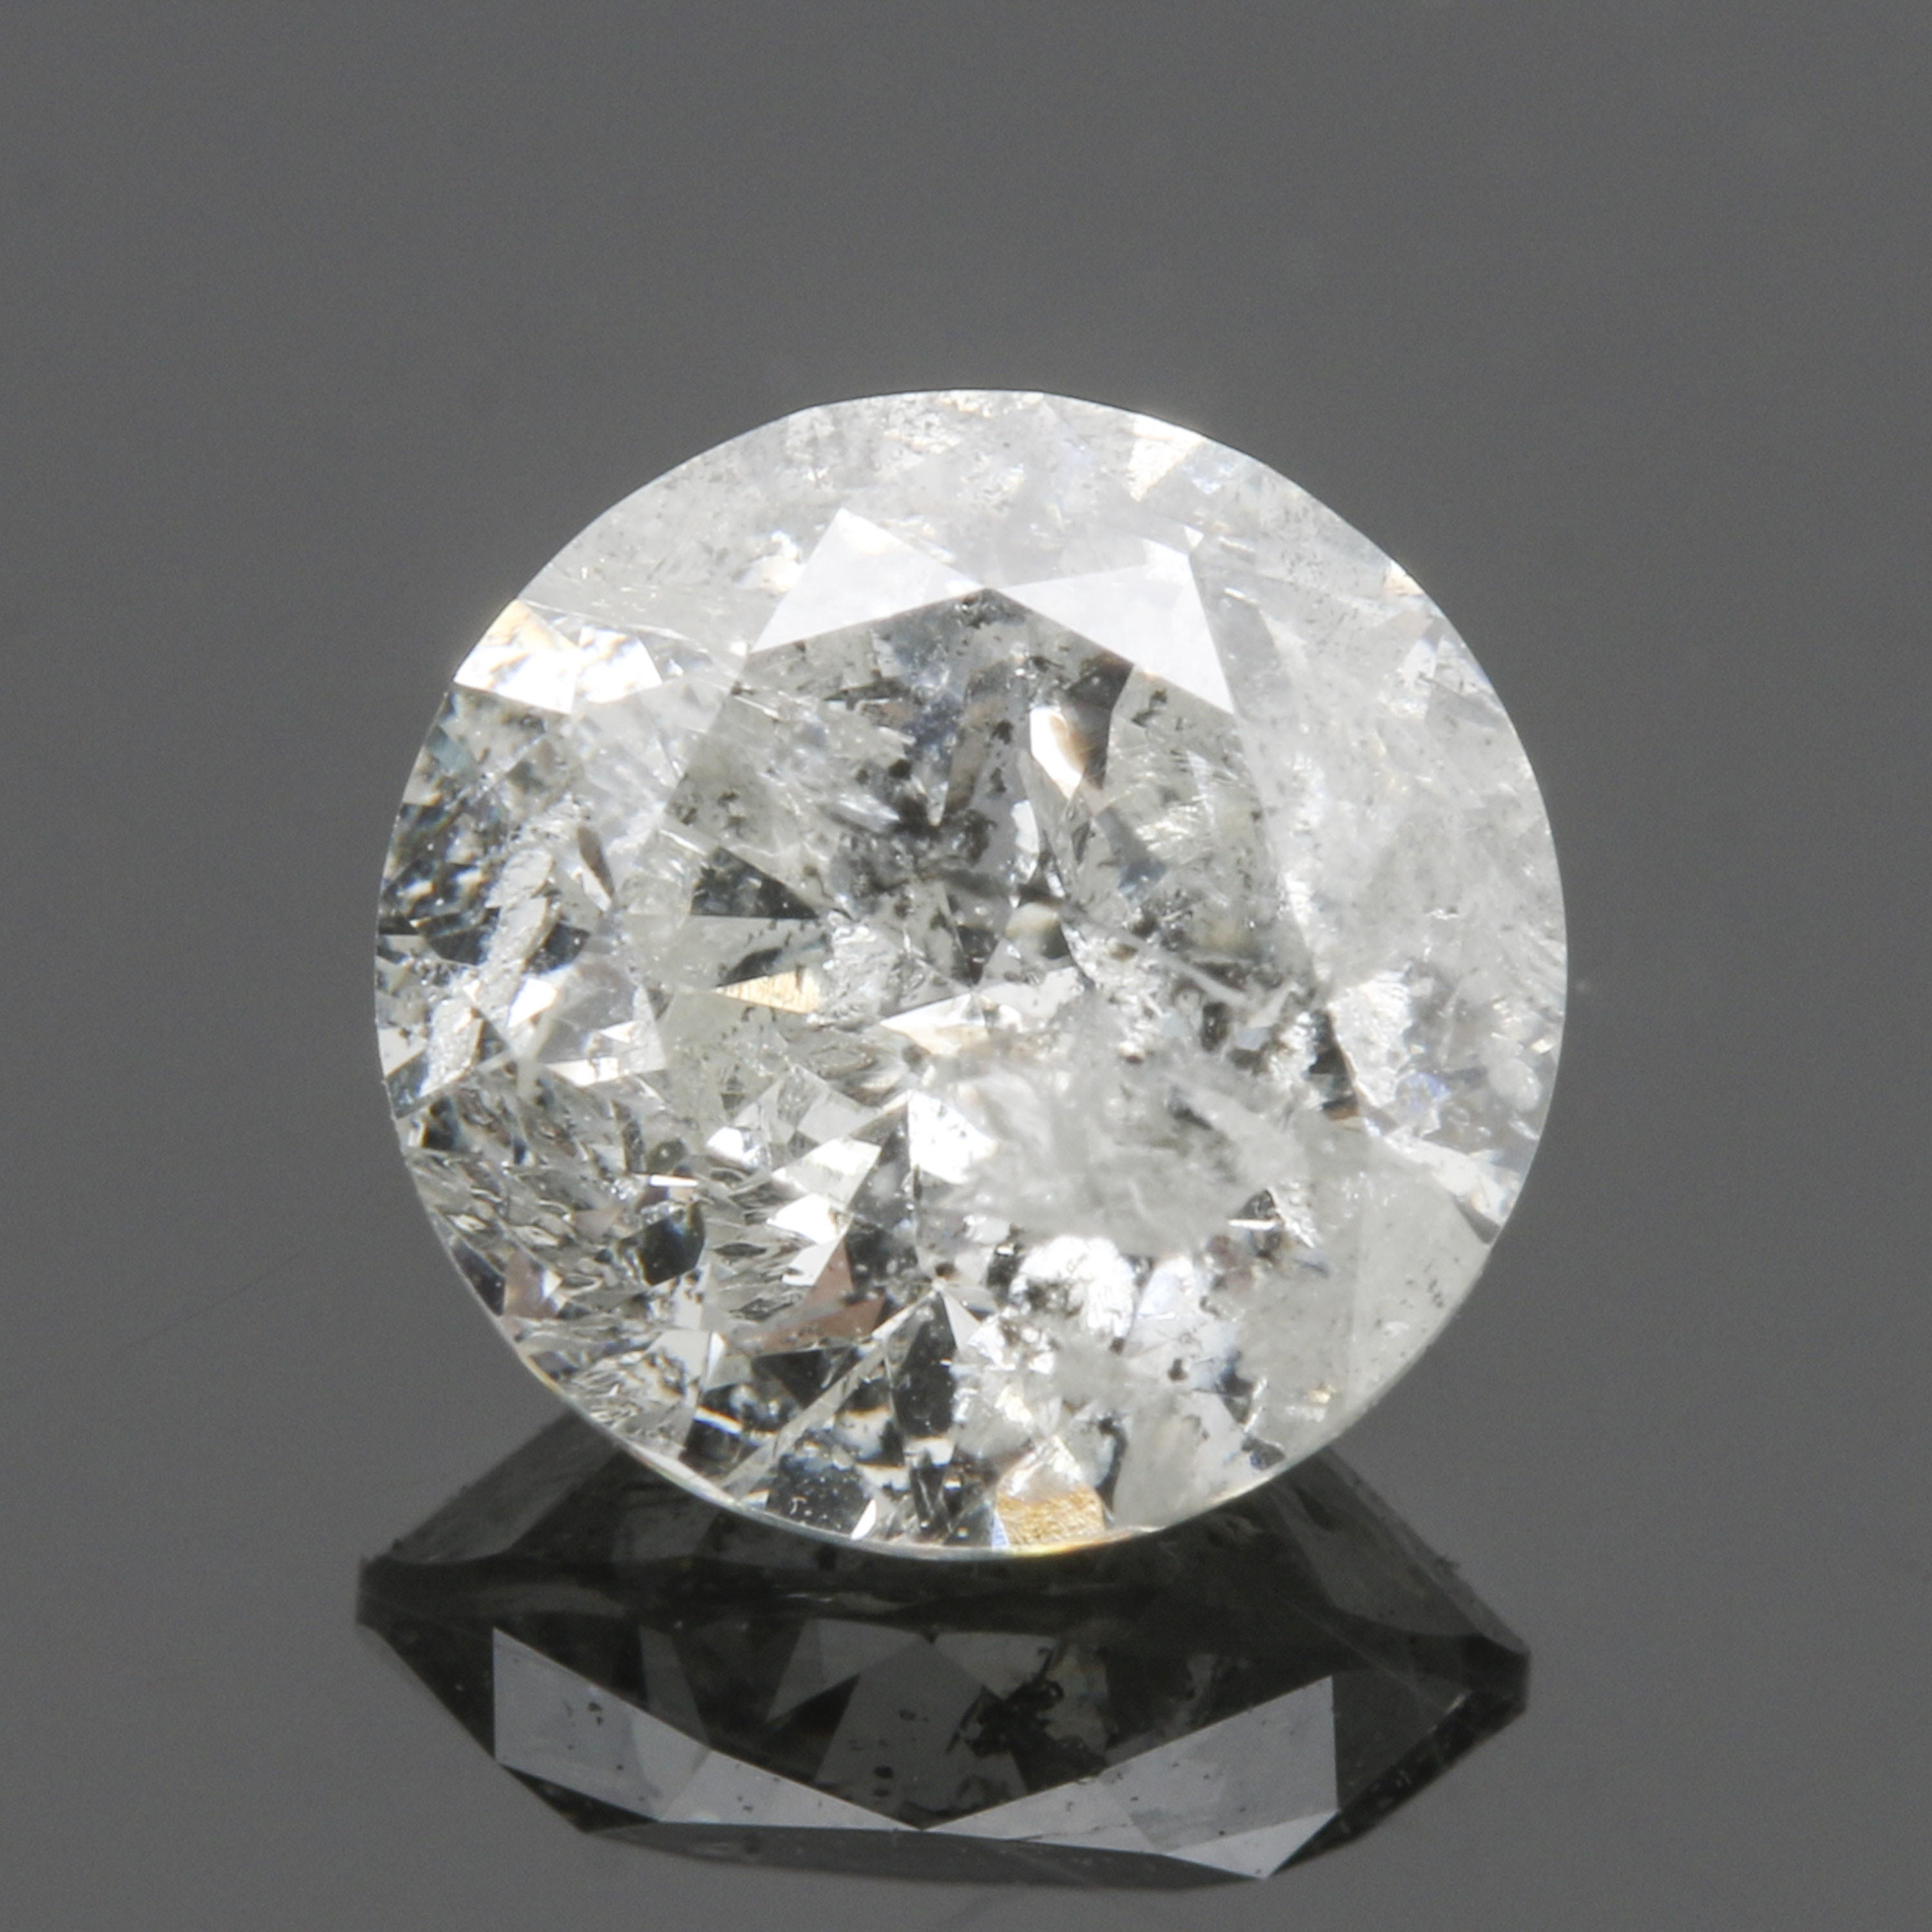 Loose 0.78 CT Diamond